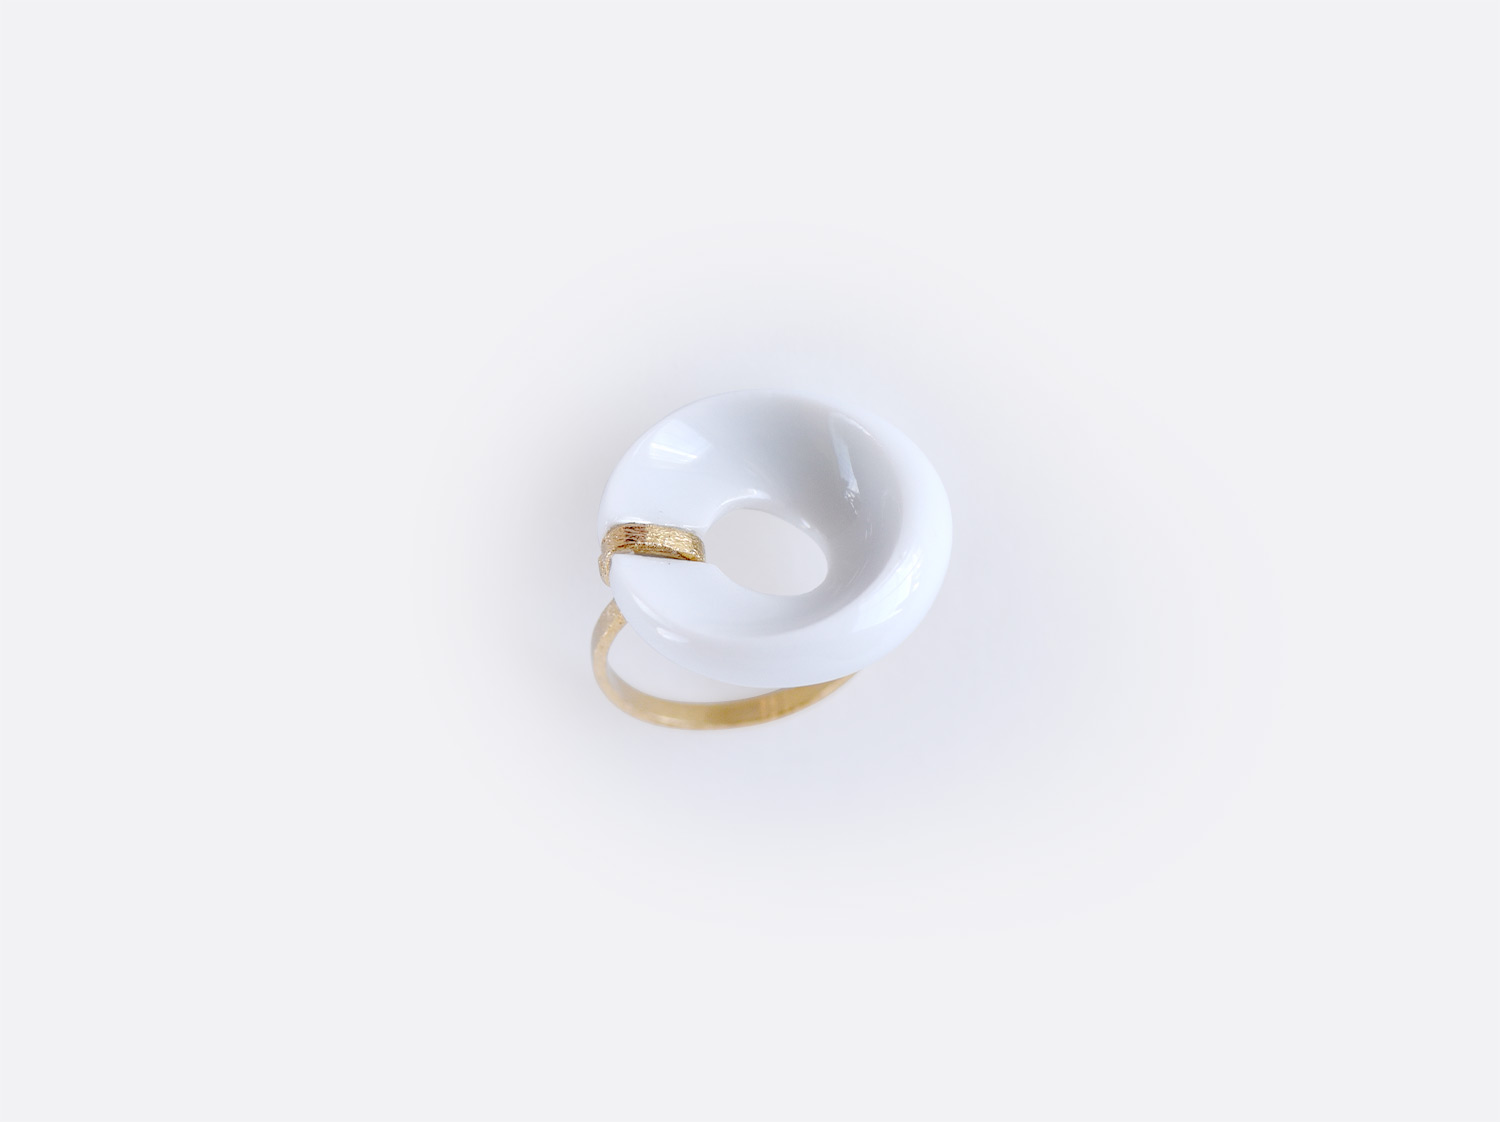 Bague Alba blanc en porcelaine de la collection ALBA BLANC Bernardaud